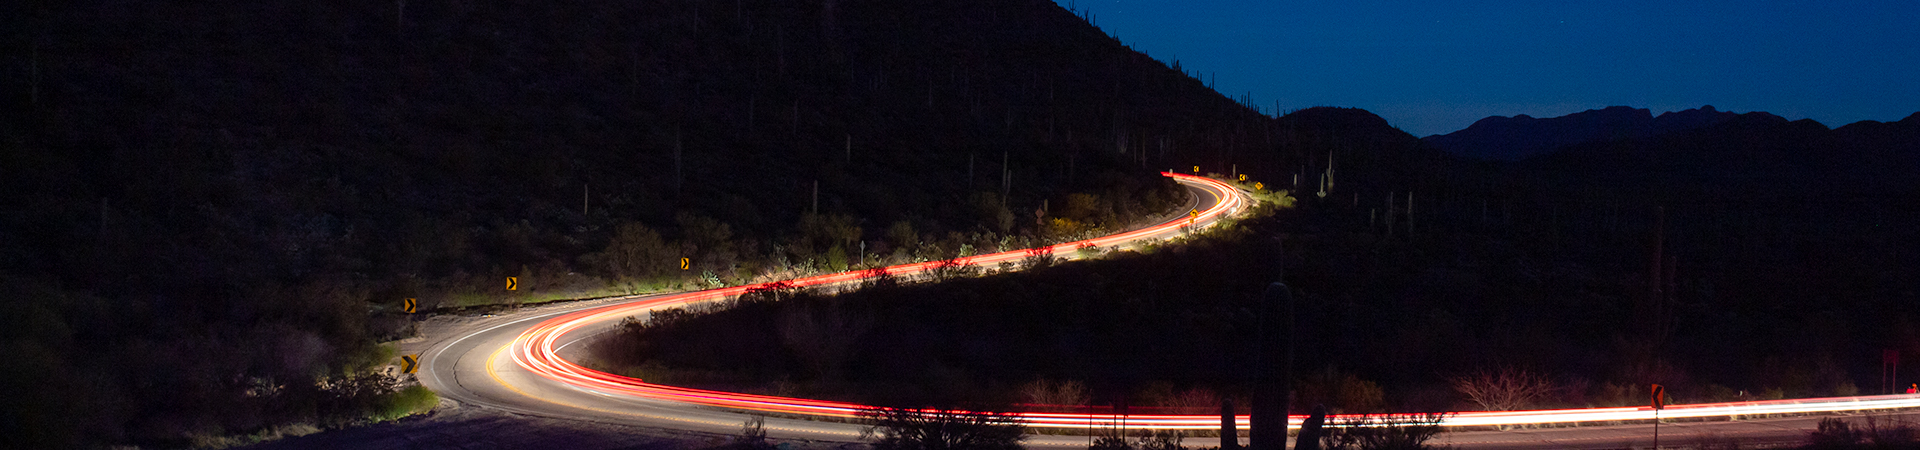 Light trails of passing vehicles on Picture Rocks road in Saguaro National Park West, outside of Tucson, Arizona in the Sonoran Desert.